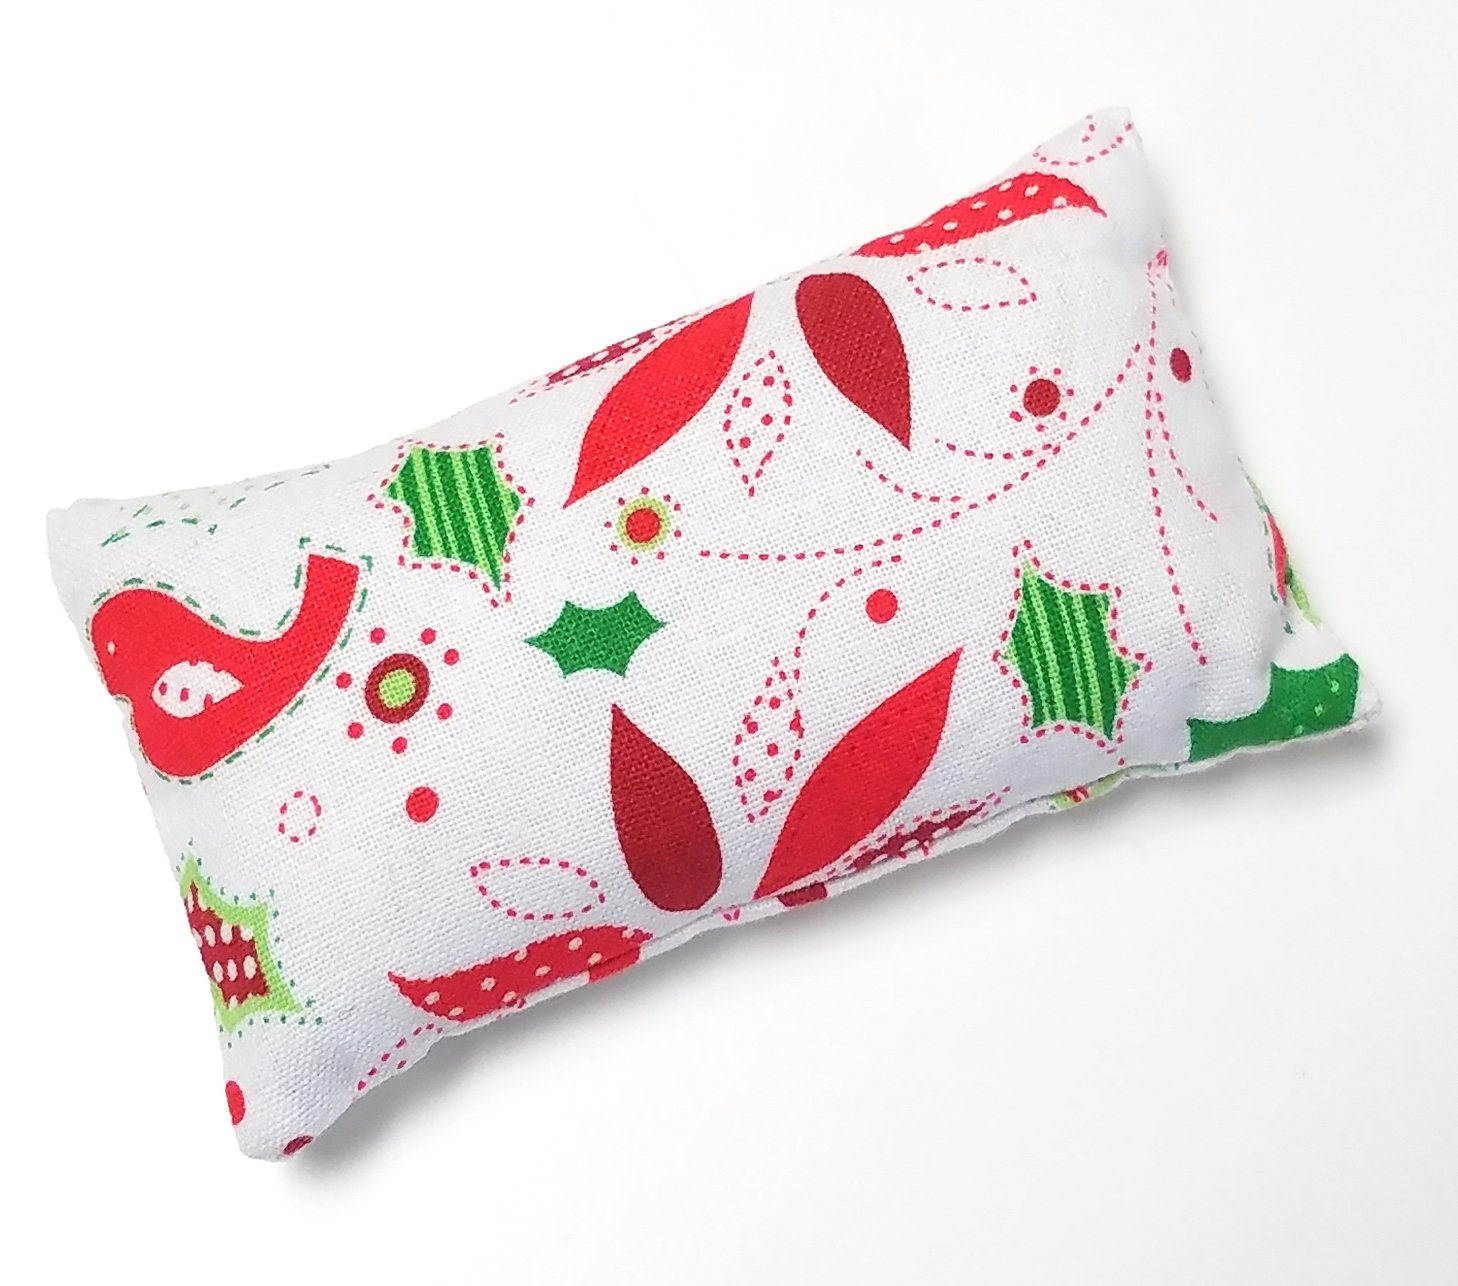 Keep your needles clean and sharp Nakpunar Red Snowflakes Emery Pincushion Filled with Abrasive Emery Mineral